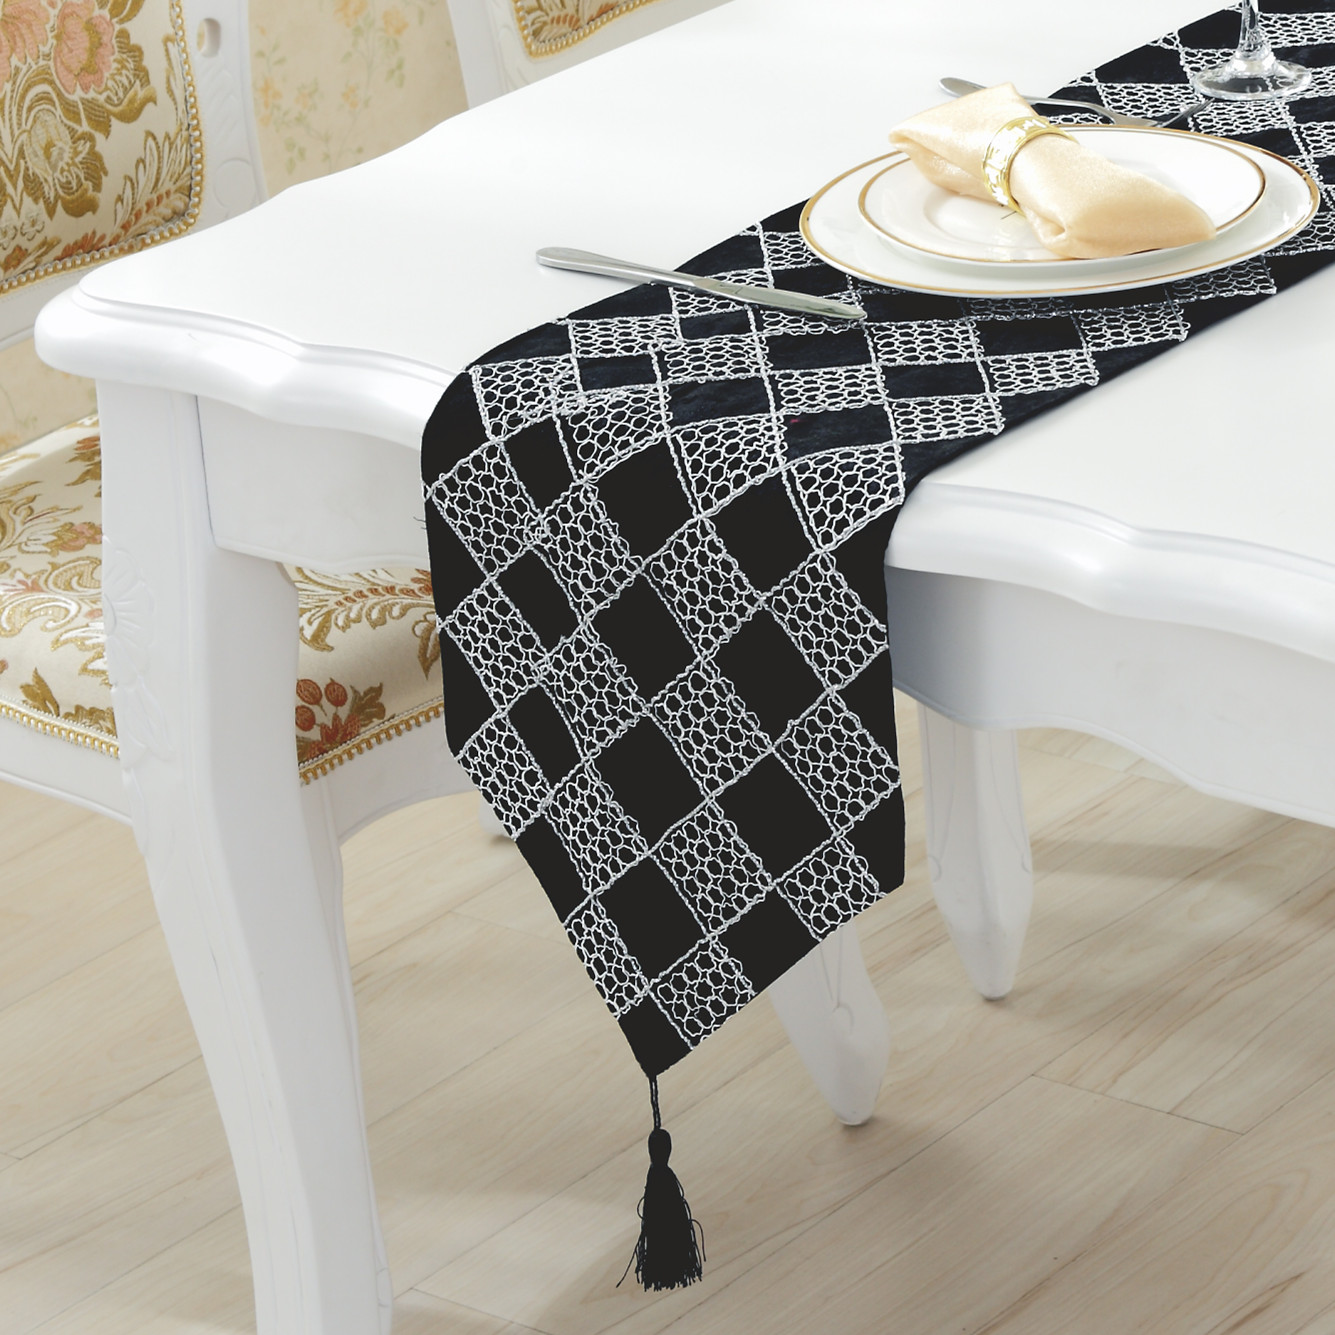 online buy wholesale modern table runners from china modern table  - cm cm the new upscale fashion simple modern table runner plaidflannel living room coffee table